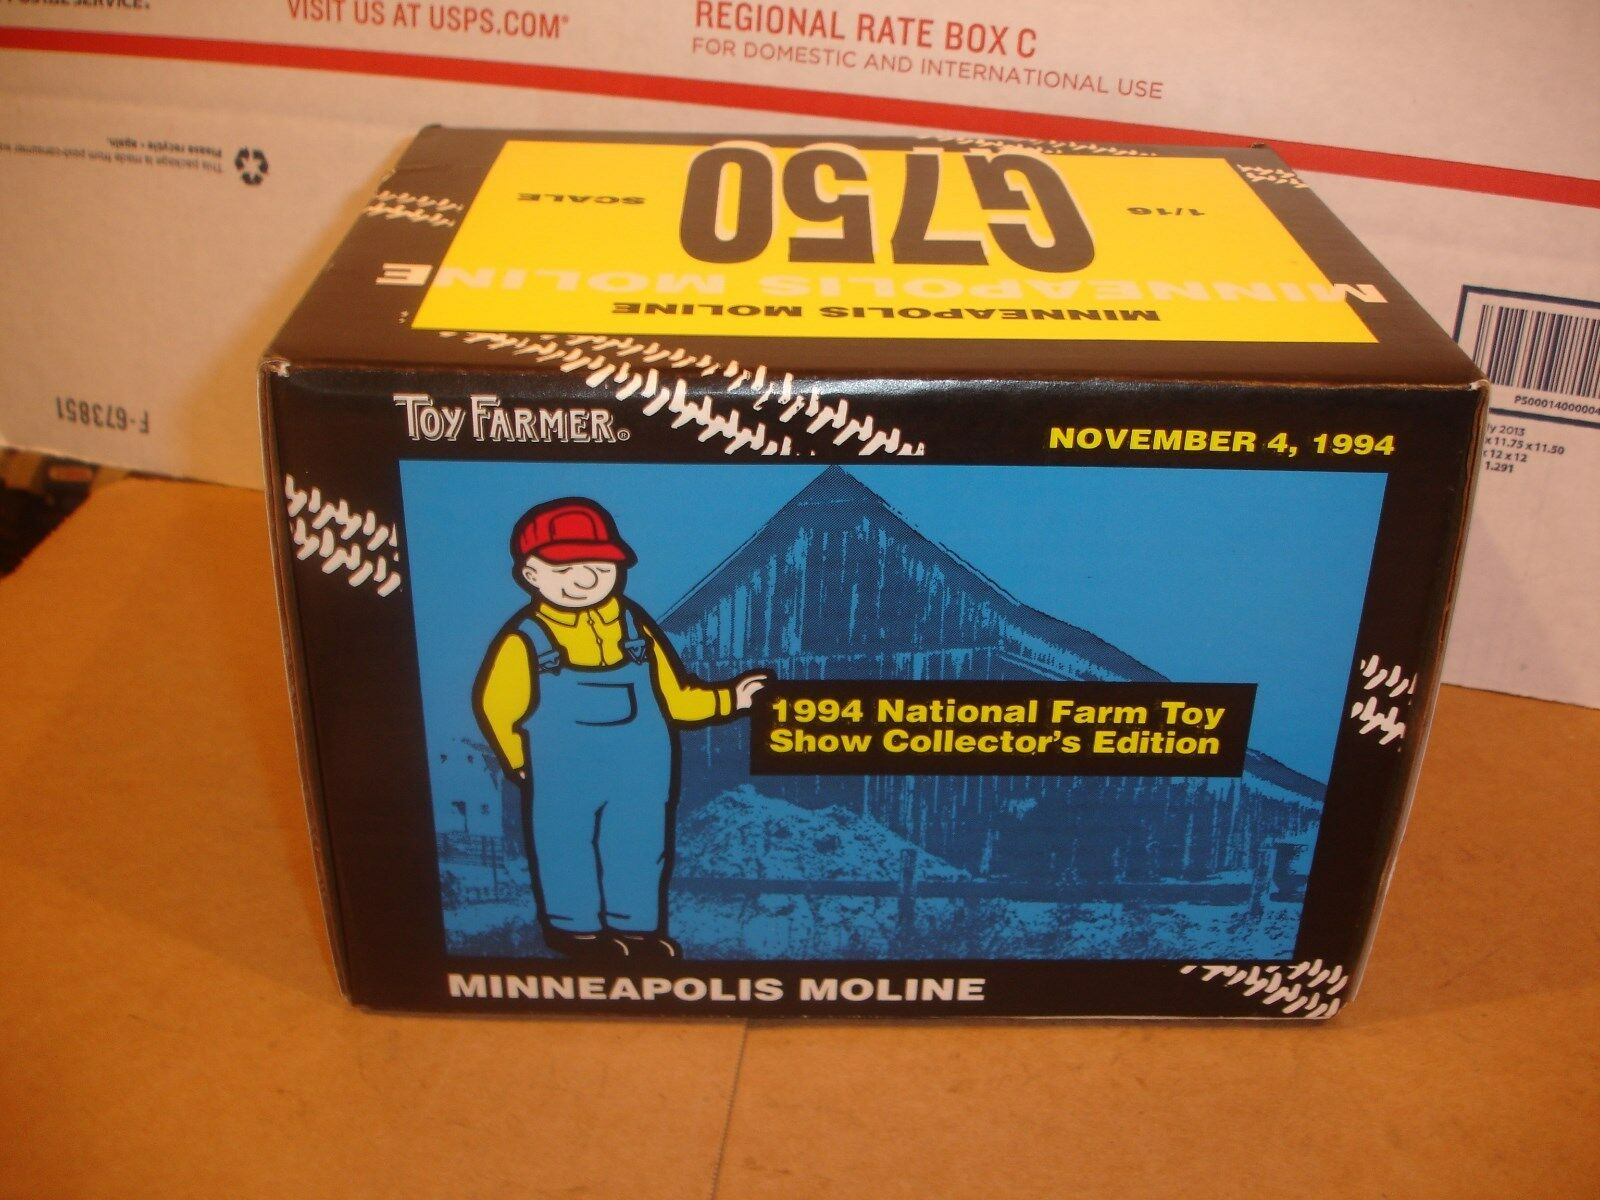 1 16 Minneapolis Moline G750 Tractor - mint, new in the box   1994 Farm Show